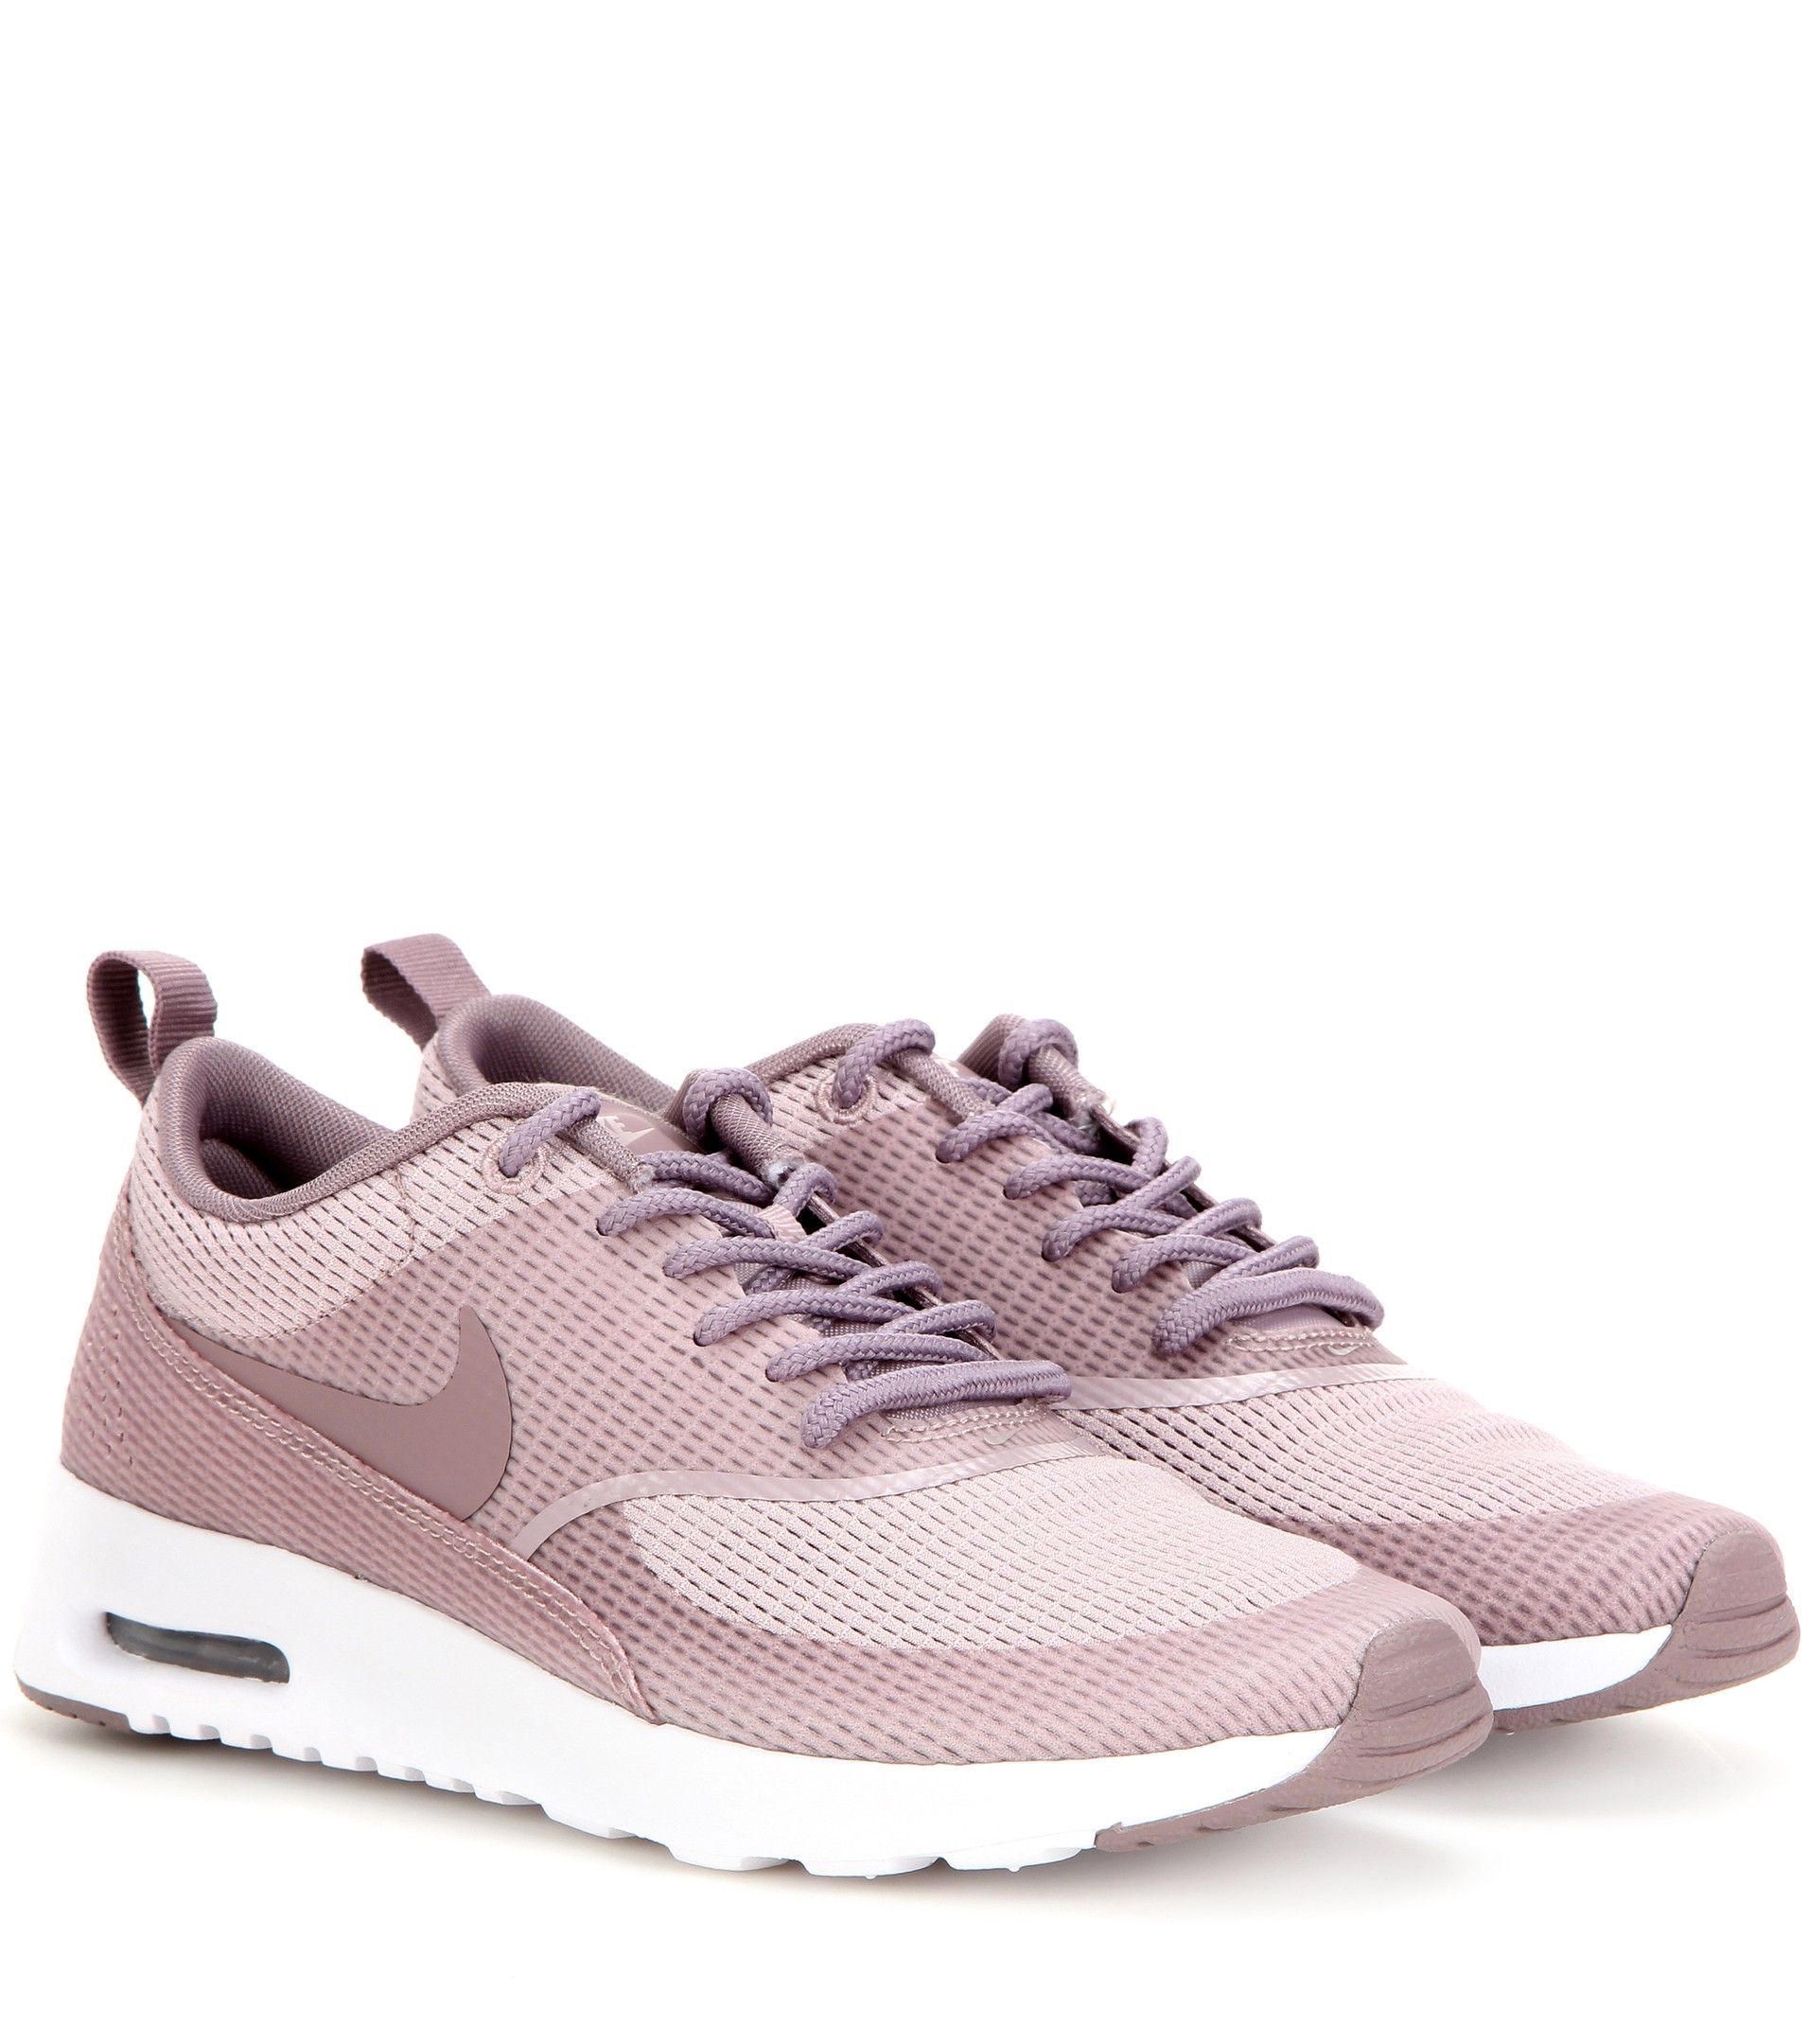 100% authentic 73108 d00ee mytheresa.com - Nike Air Max Thea Txt sneakers - Luxury Fashion for Women    Designer clothing, shoes, bags